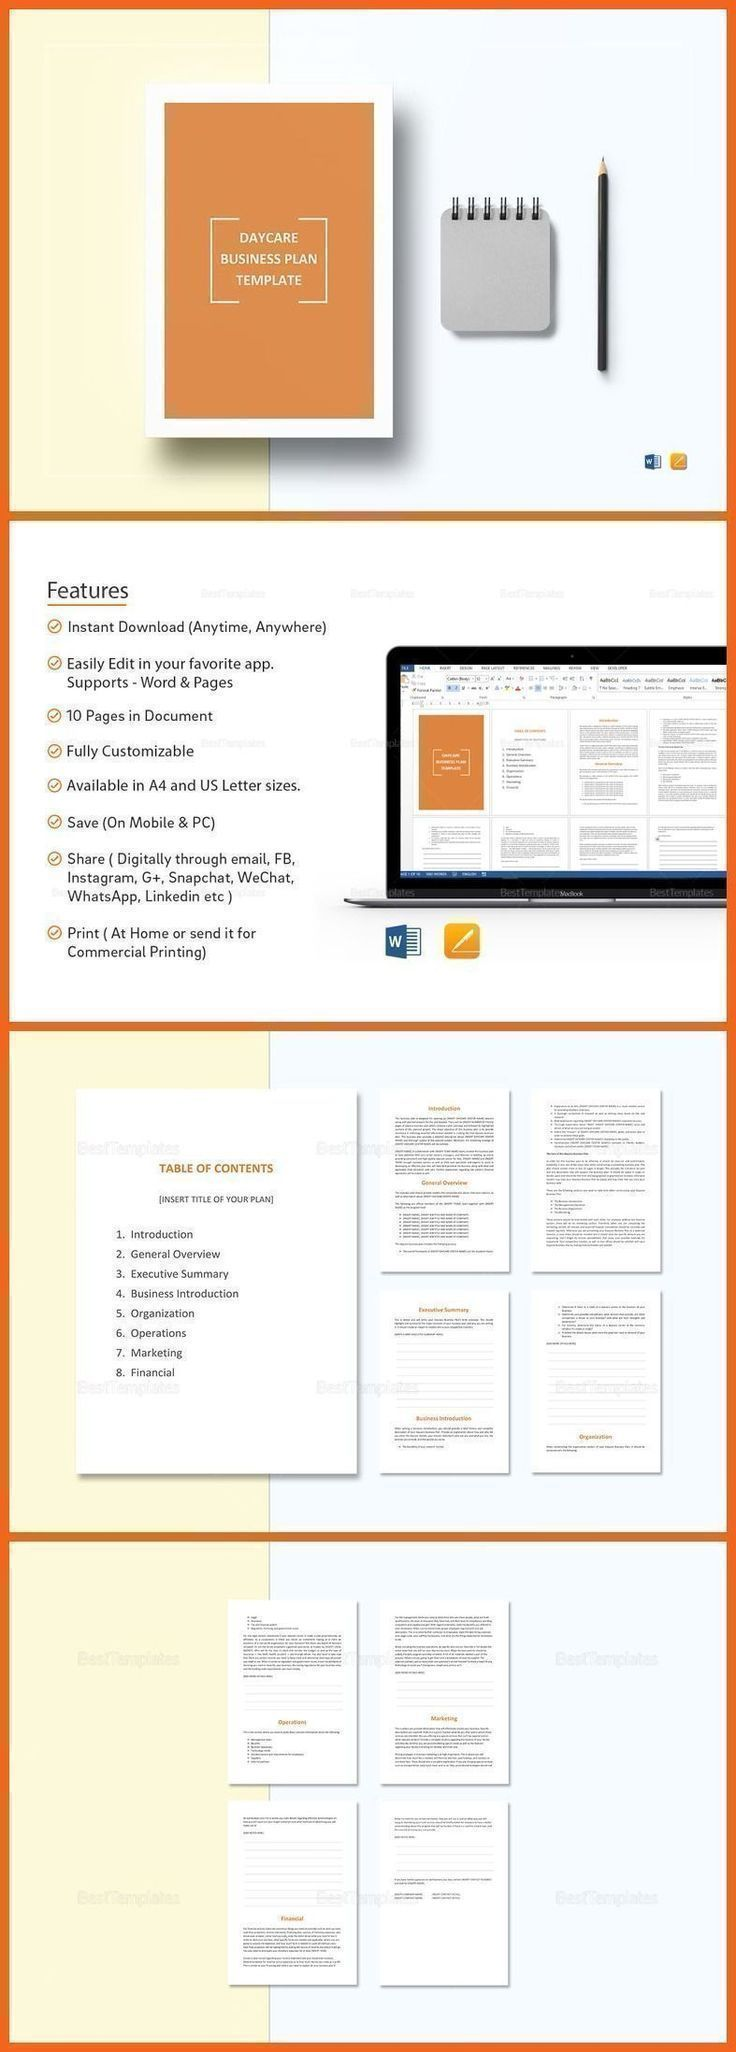 Daycare Business Plan Template   Formats Included Ms Word